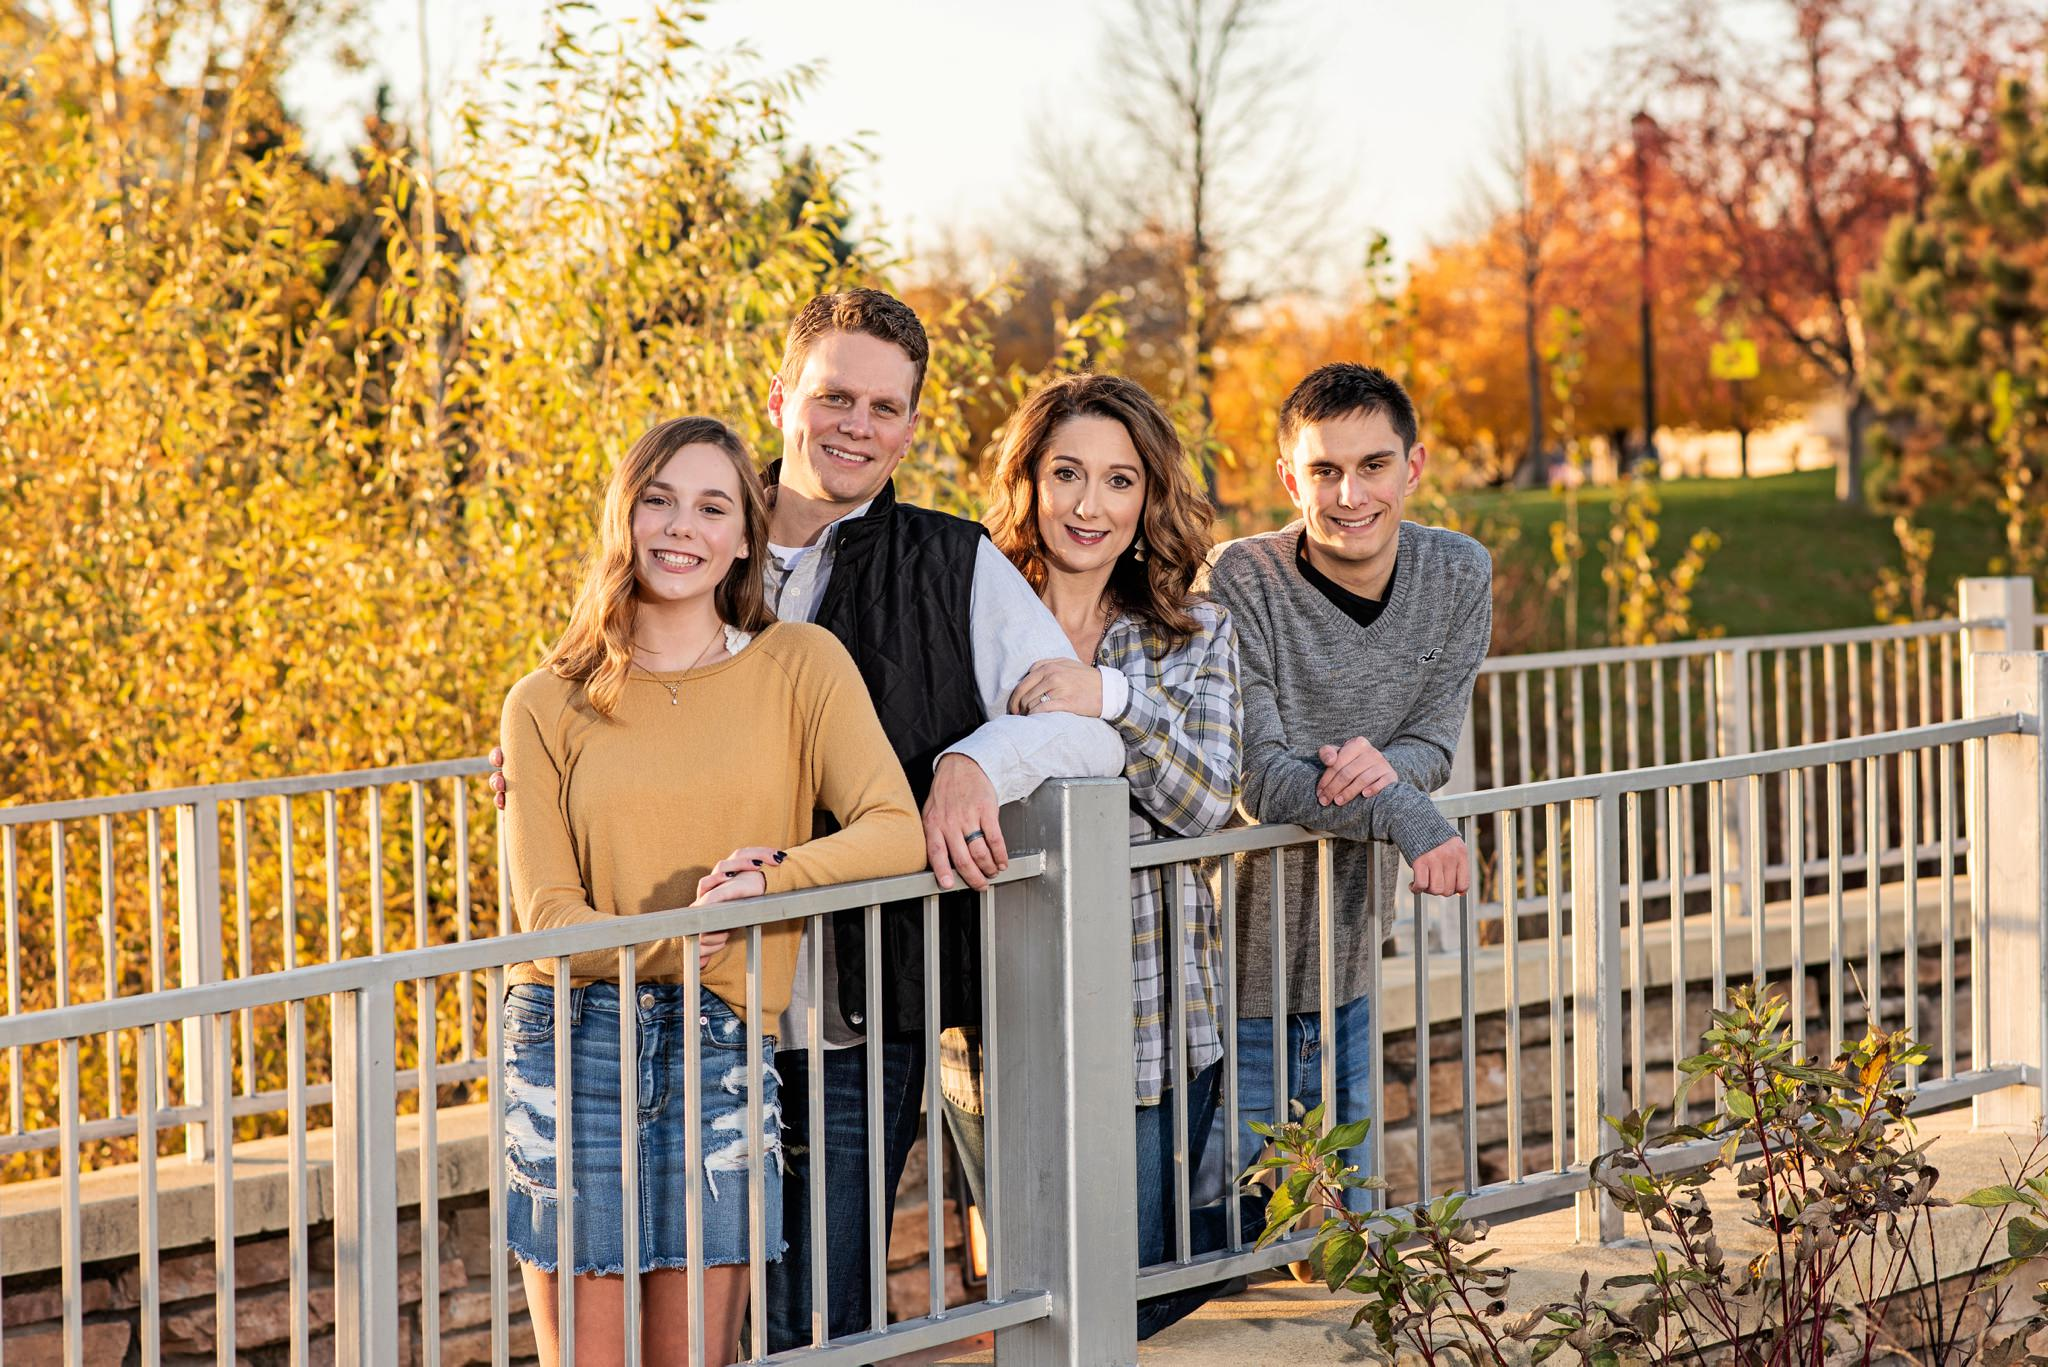 Wittwer-Family-Rotella-Photography-2018-32_WEB.jpg